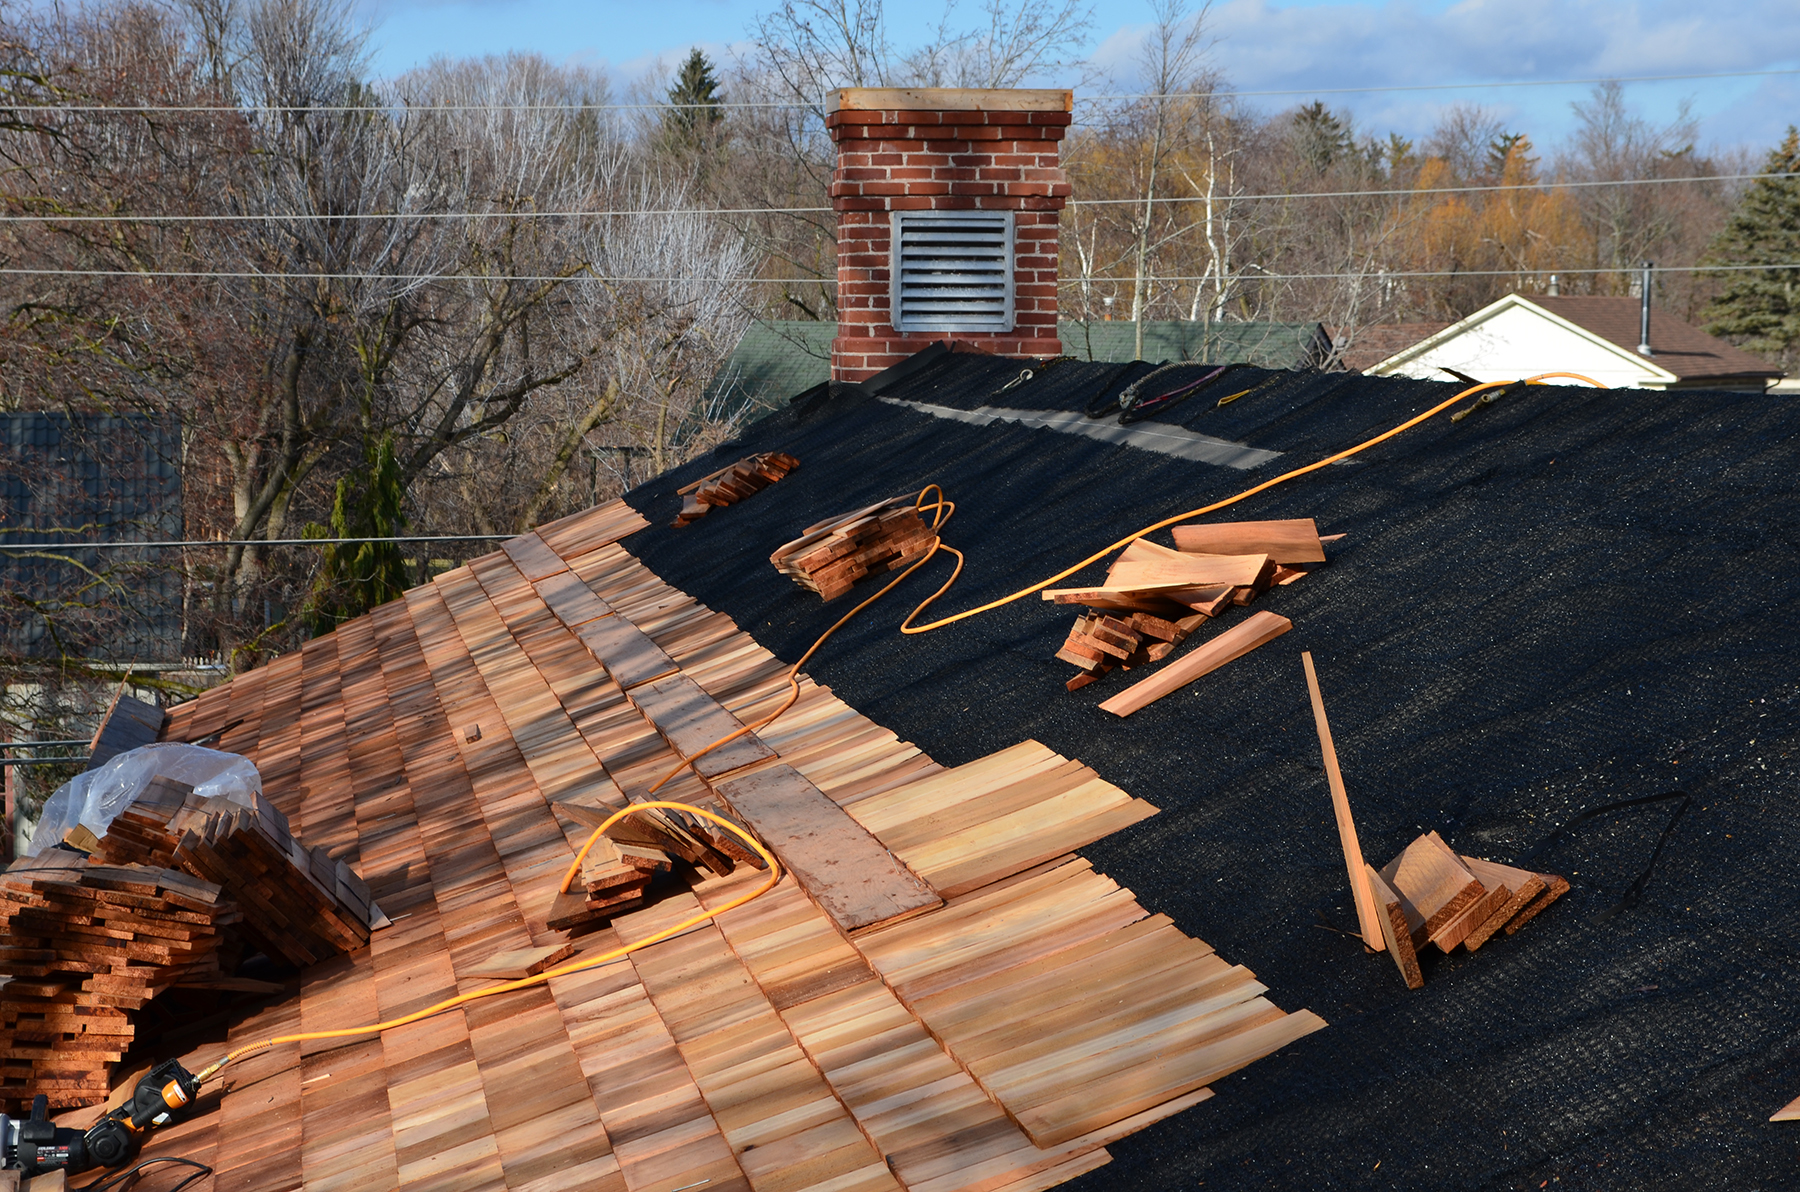 Commercial Cedar Roof during installation